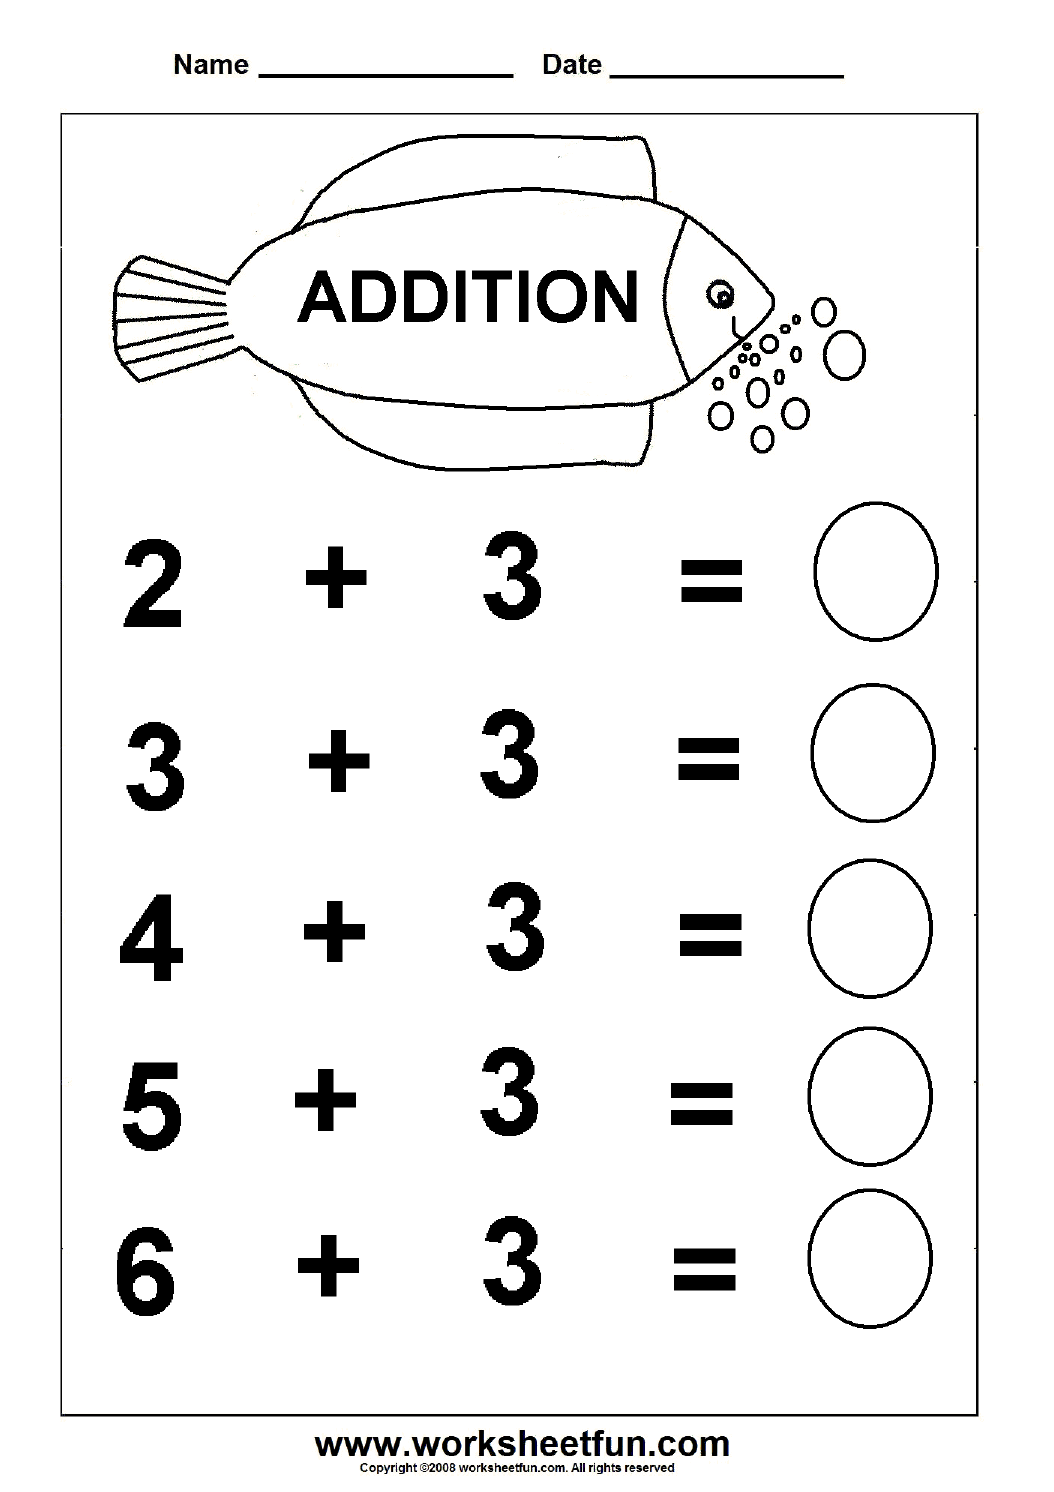 Printables Basic Math Addition Worksheets beginner addition 6 kindergarten worksheets free first grade worksheets